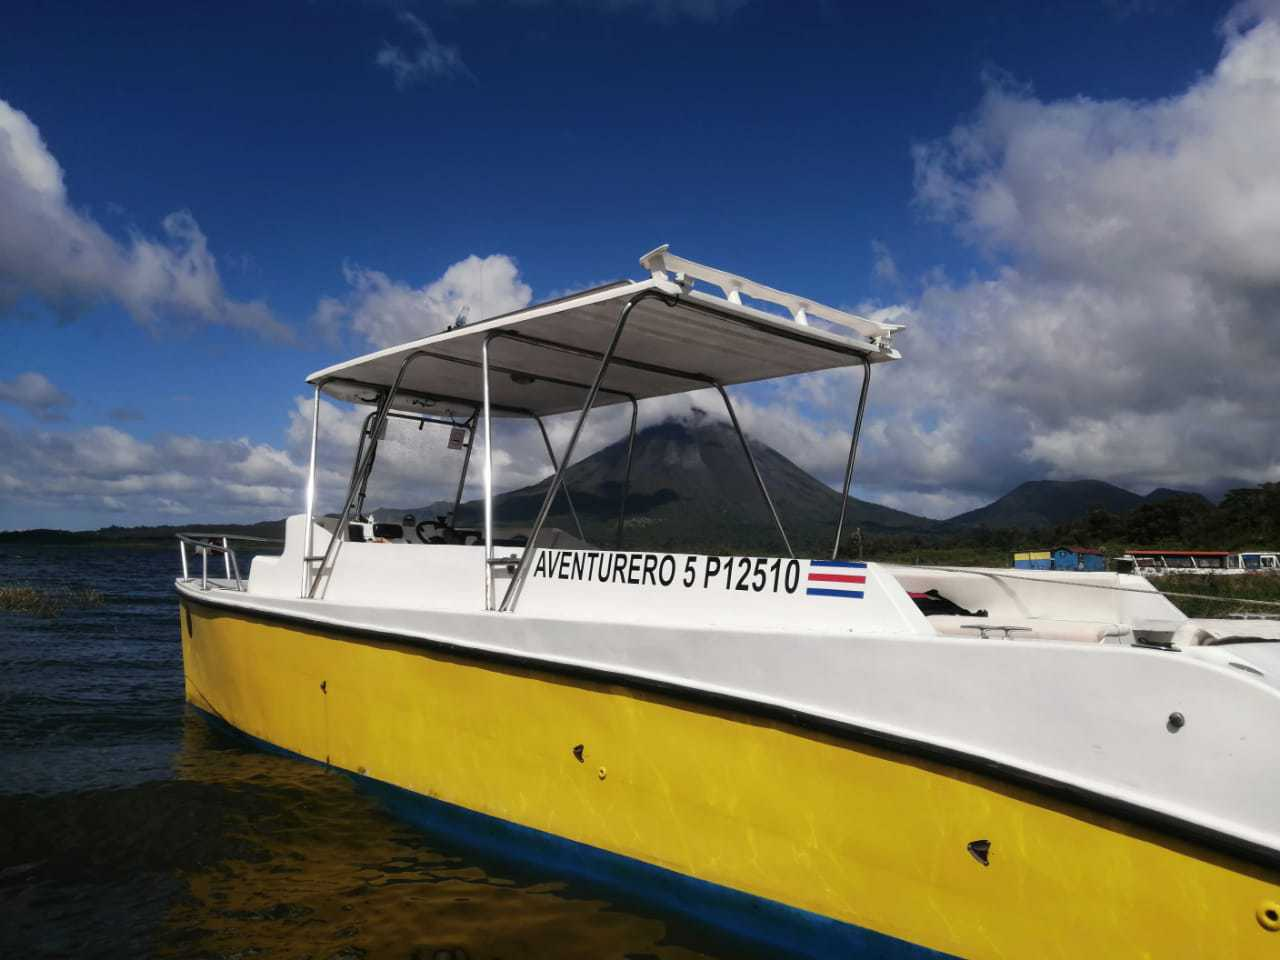 Take the fast way to the beach with our Fast Boat transfer to Guanacaste with Desafio.